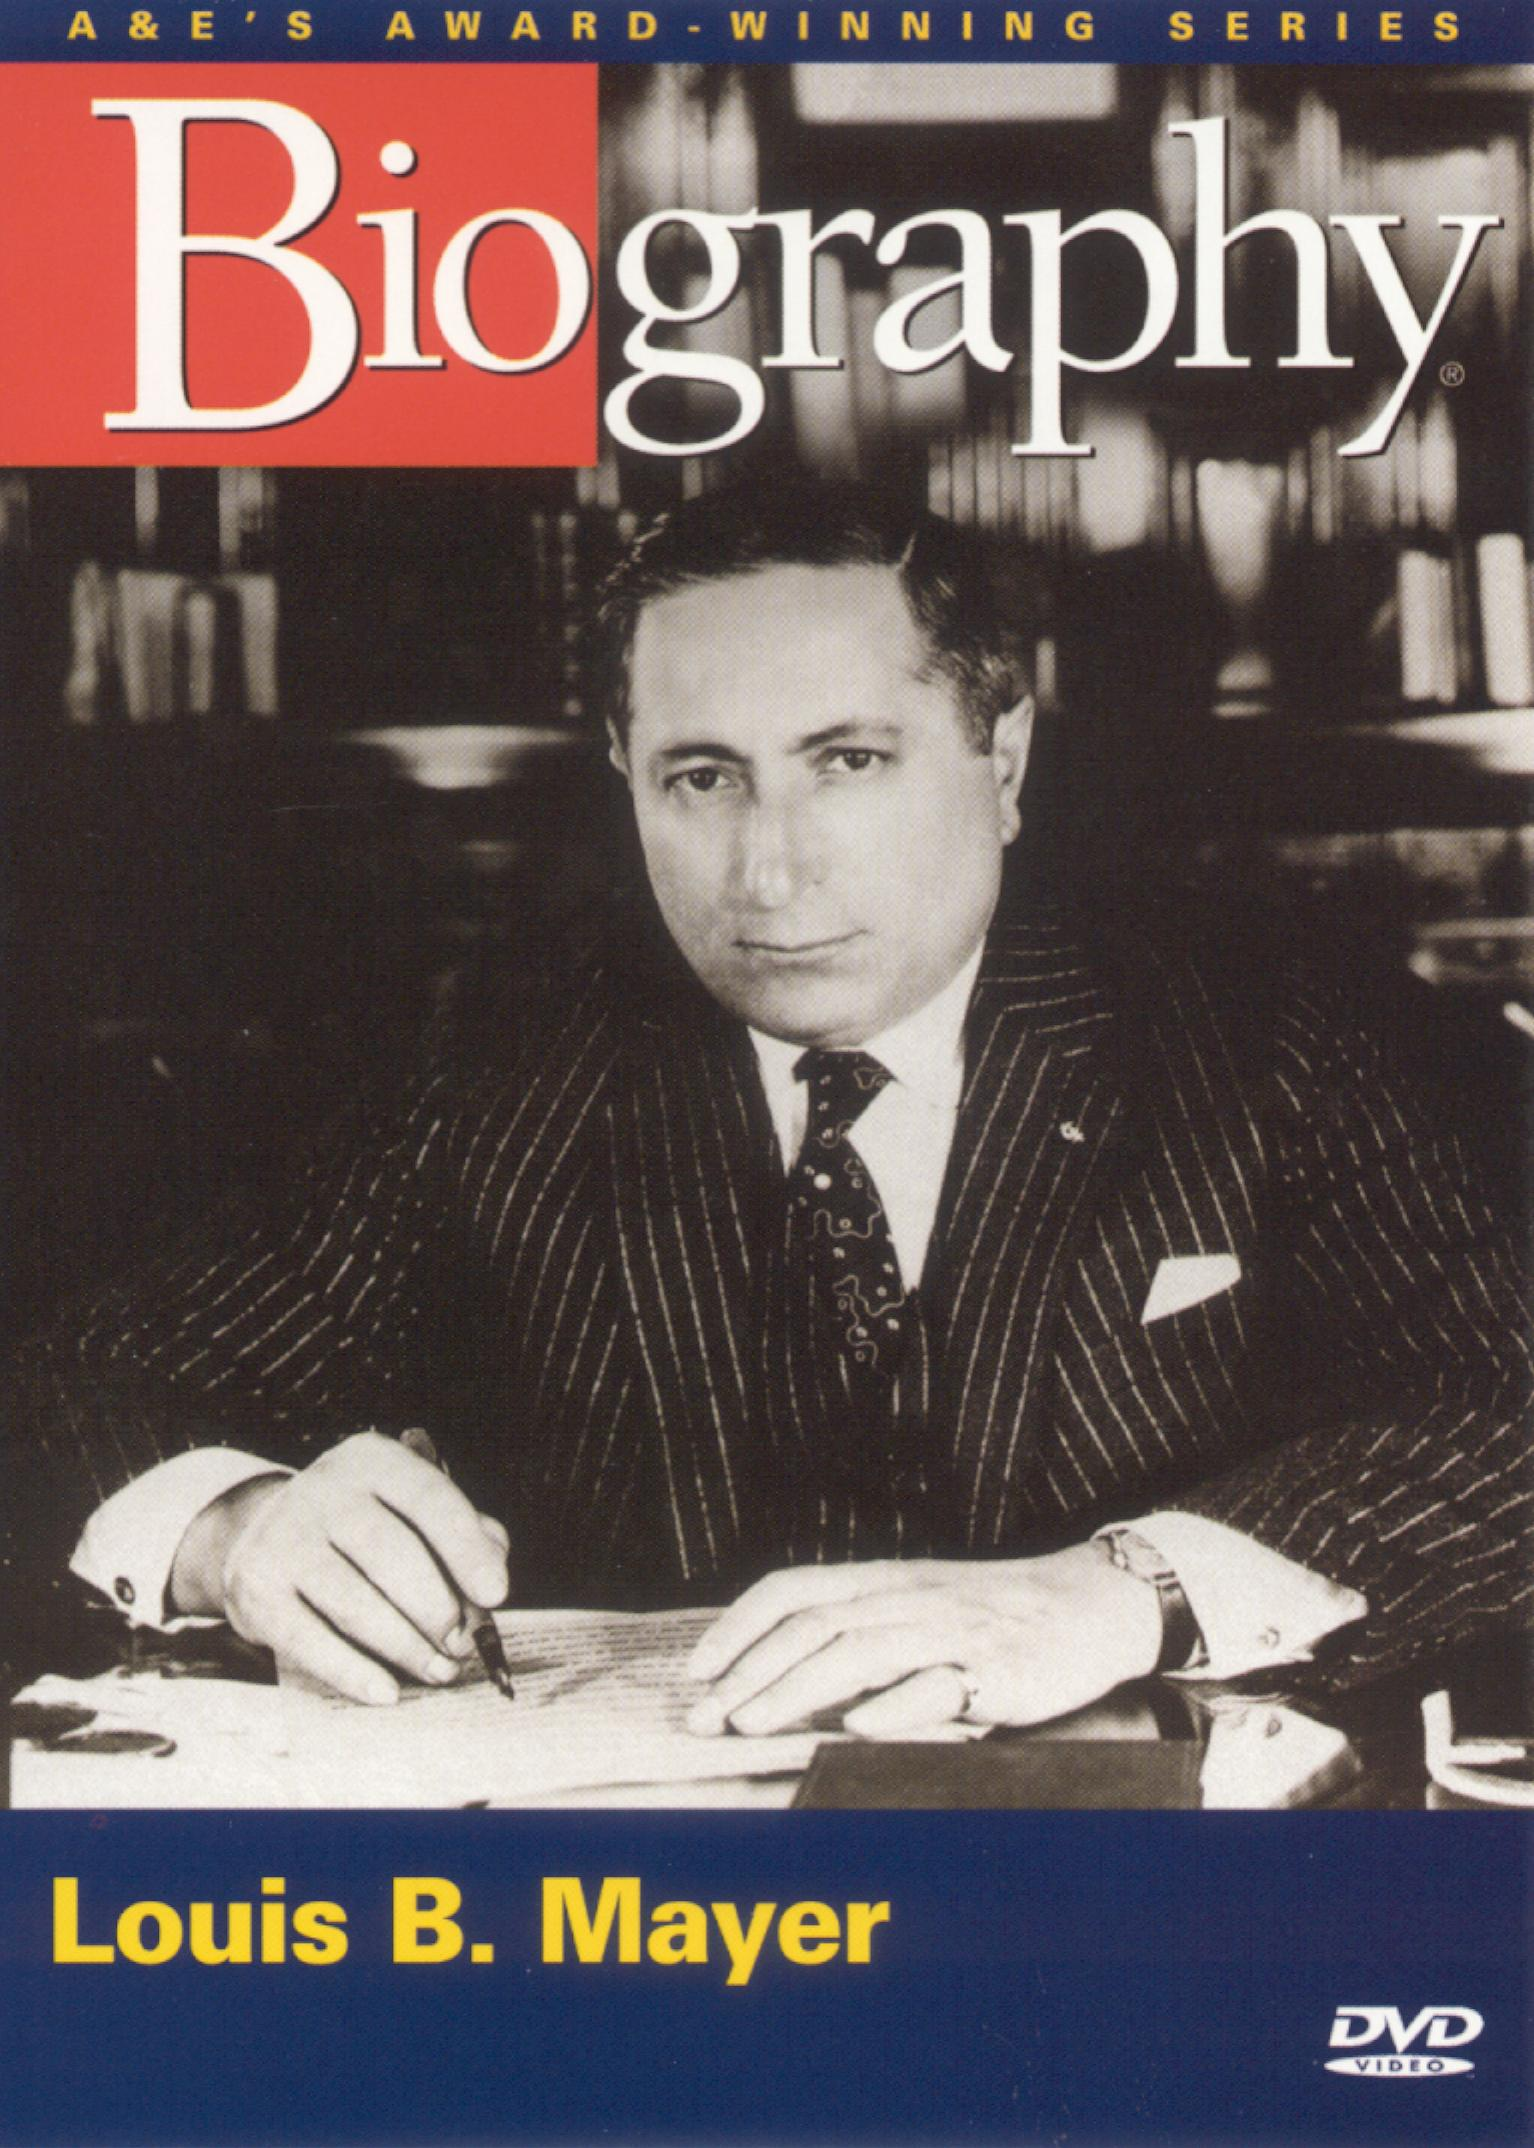 Biography: Louis B. Mayer